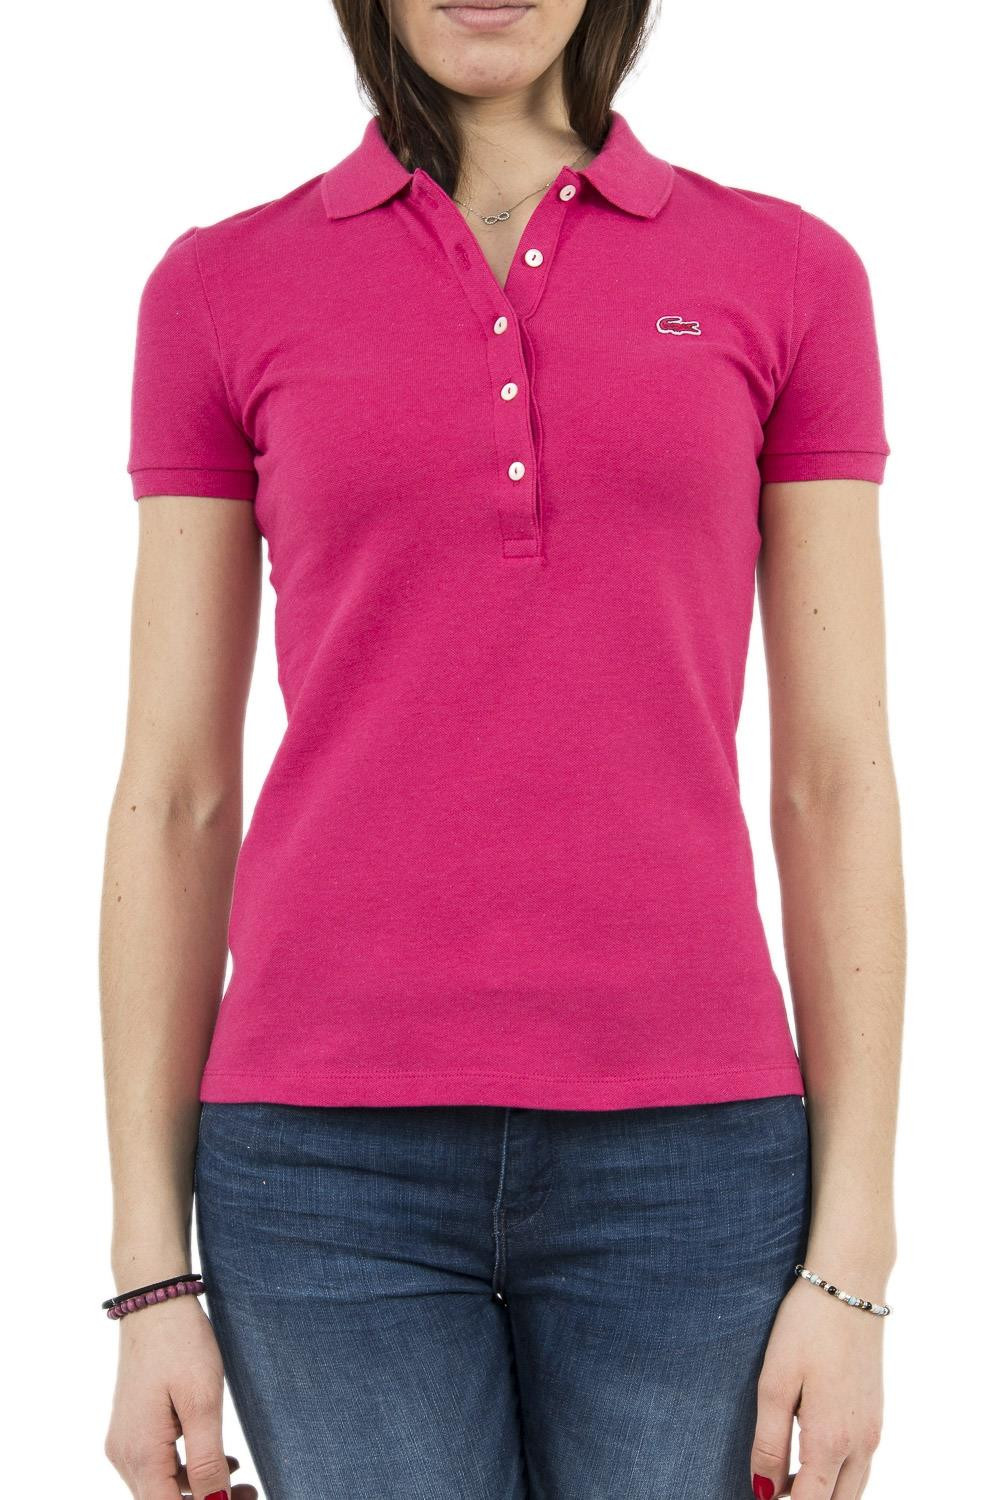 Polo Lacoste PF7845 rose